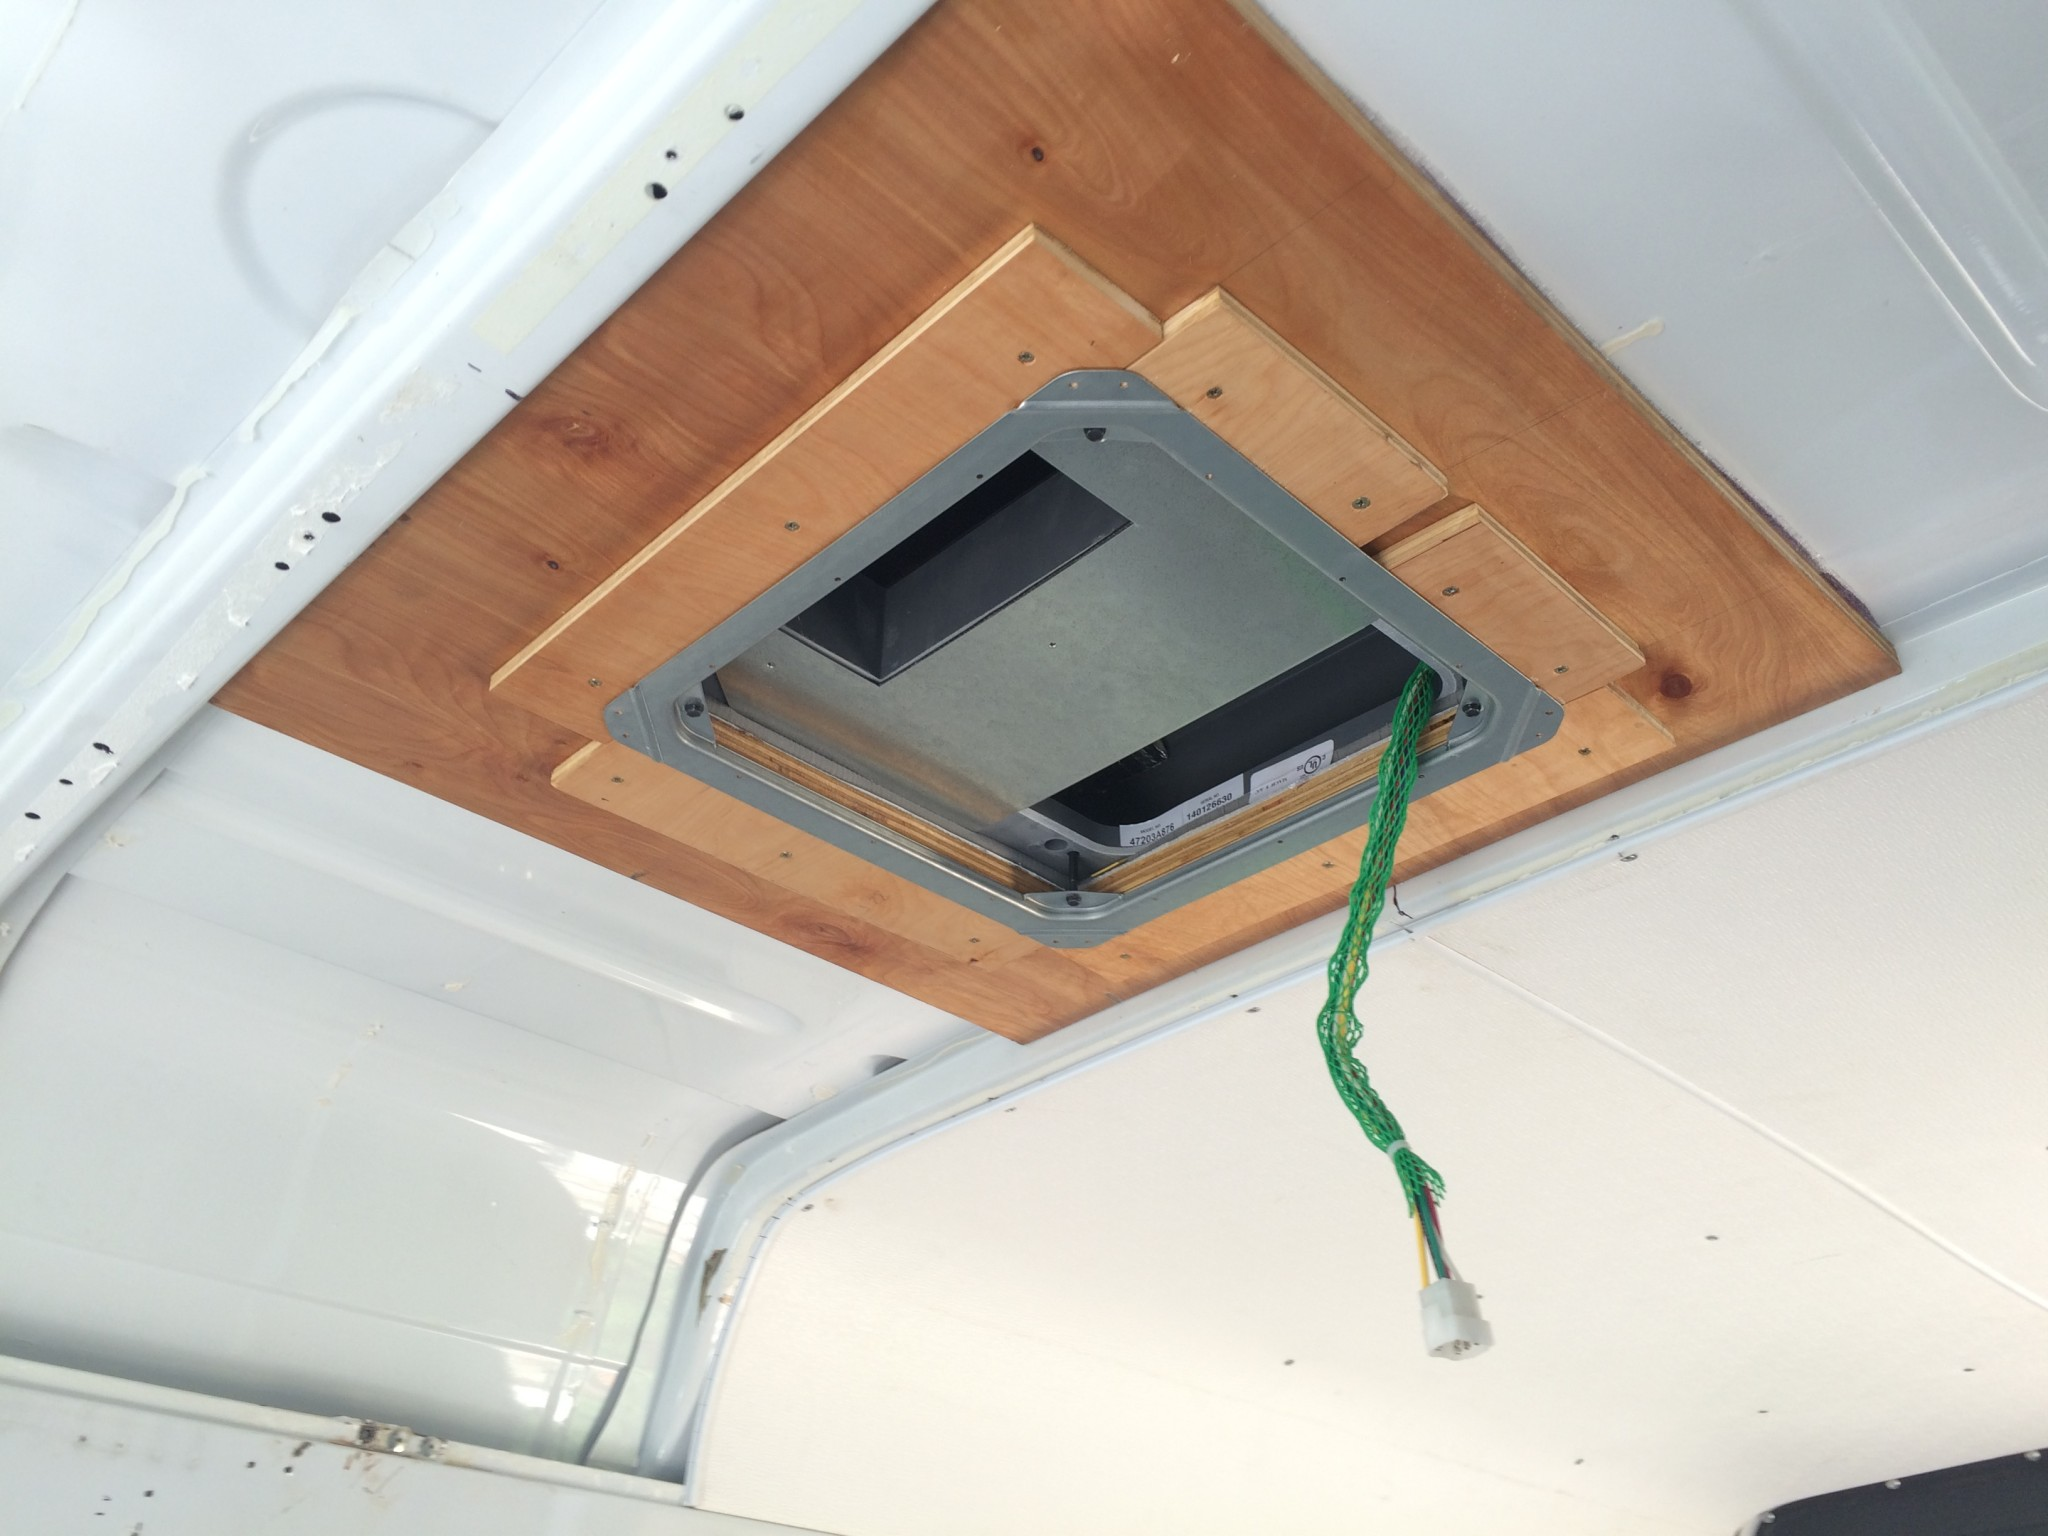 Adding A Rear Rooftop Ac To Sprinter Van Camper Upfitters Wiring Diagrams Coleman Mach 8 Unit Secured With The Bracket And Plywood Support Plate From Inside